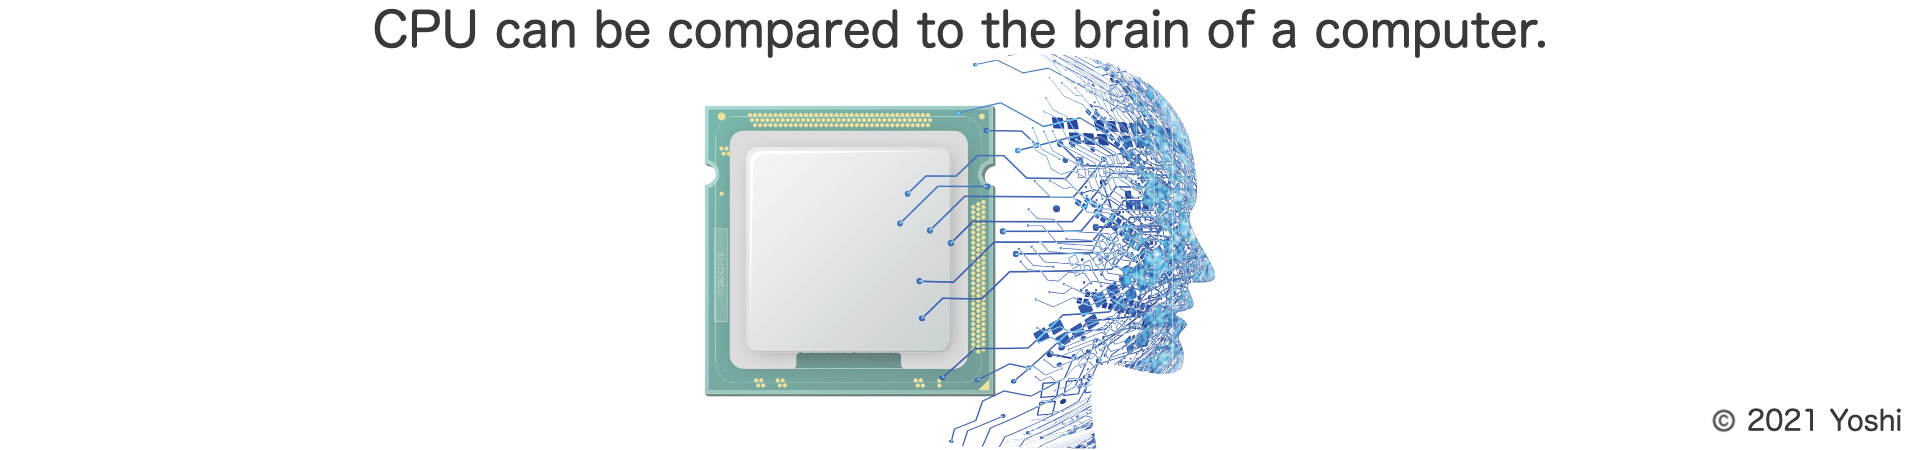 CPU can be compared to the brain of a computer